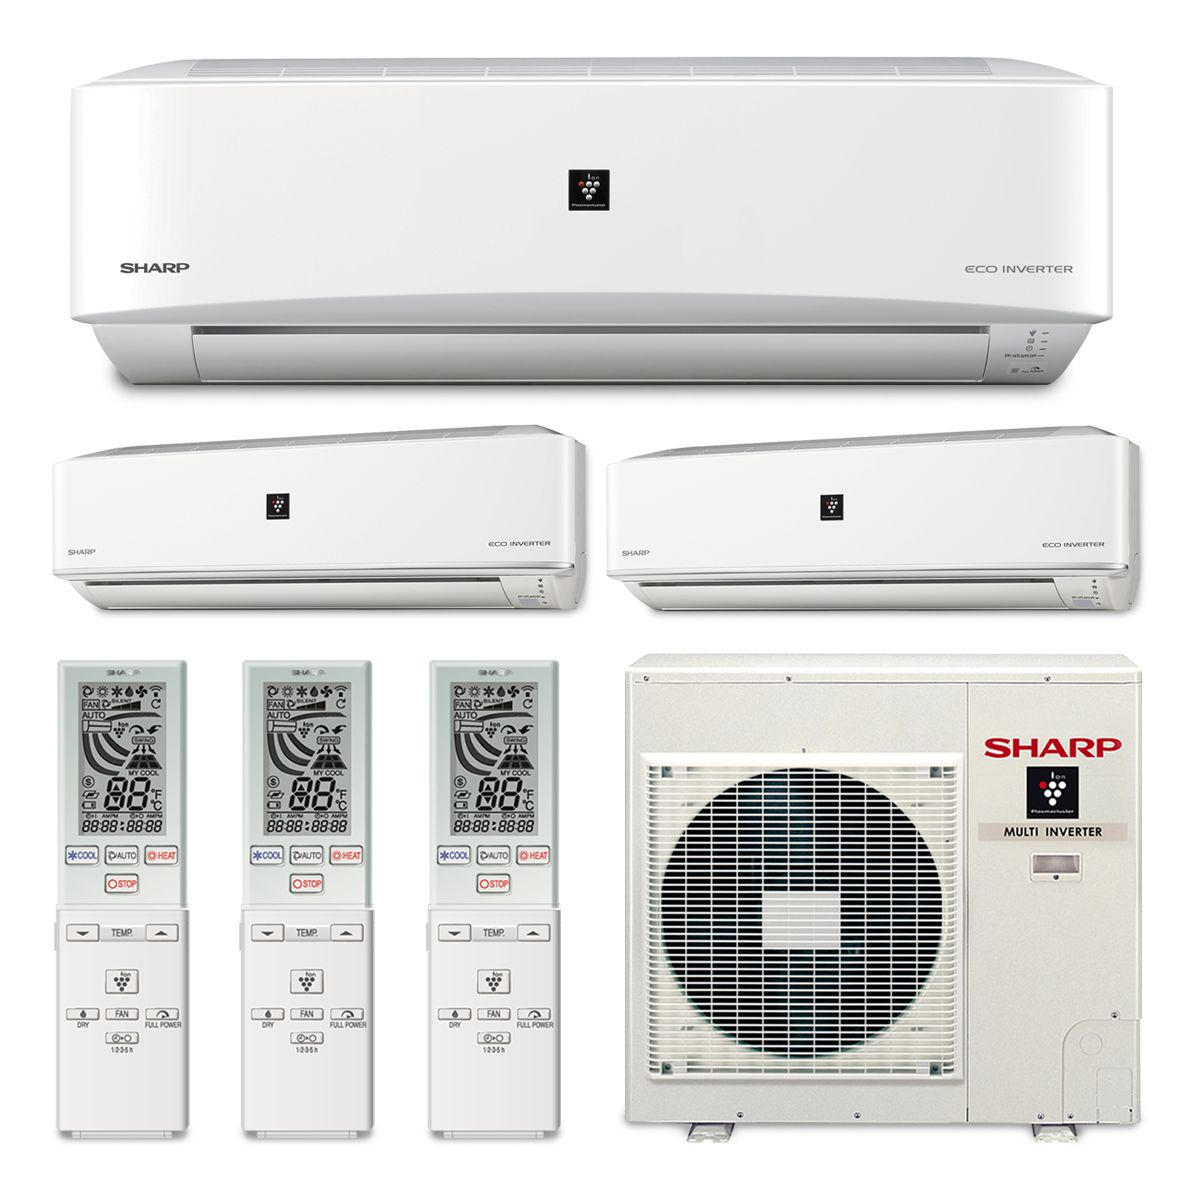 Sharp a x4m30pu 3wf 06 sharp a x4m30pu 3wf 06 30000 btu tri zone wall mount ductless mini split air conditioner heat pump 208 230v 9 9 18 biocorpaavc Choice Image